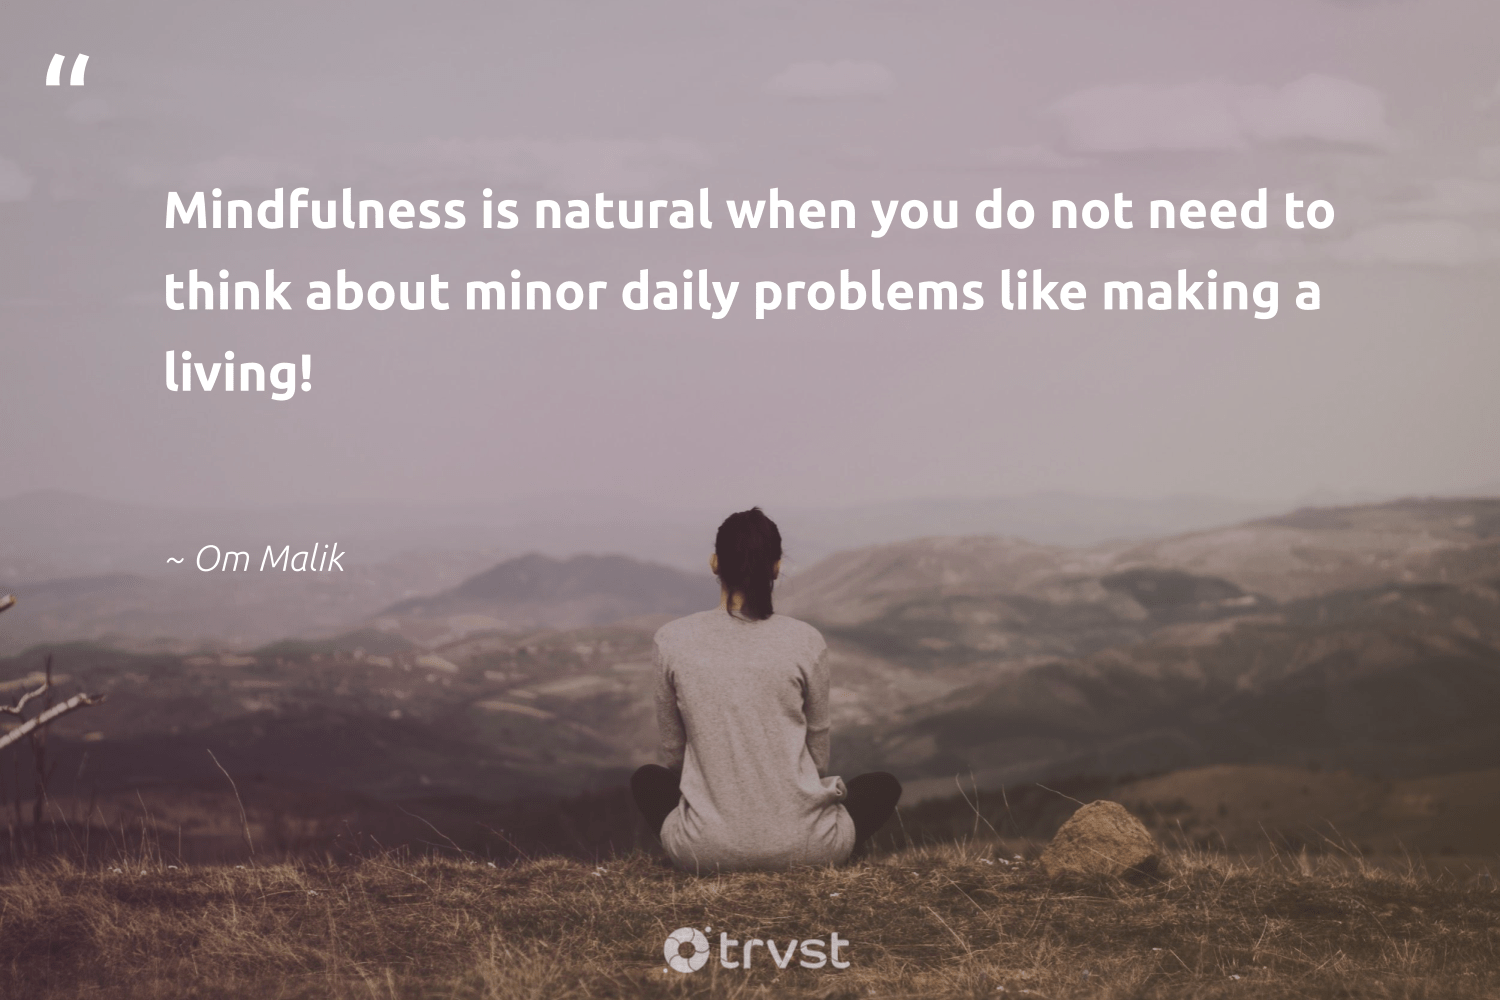 """""""Mindfulness is natural when you do not need to think about minor daily problems like making a living!""""  - Om Malik #trvst #quotes #natural #mindfulness #motivation #positivity #health #dotherightthing #mindset #kindness #changemakers #gogreen"""